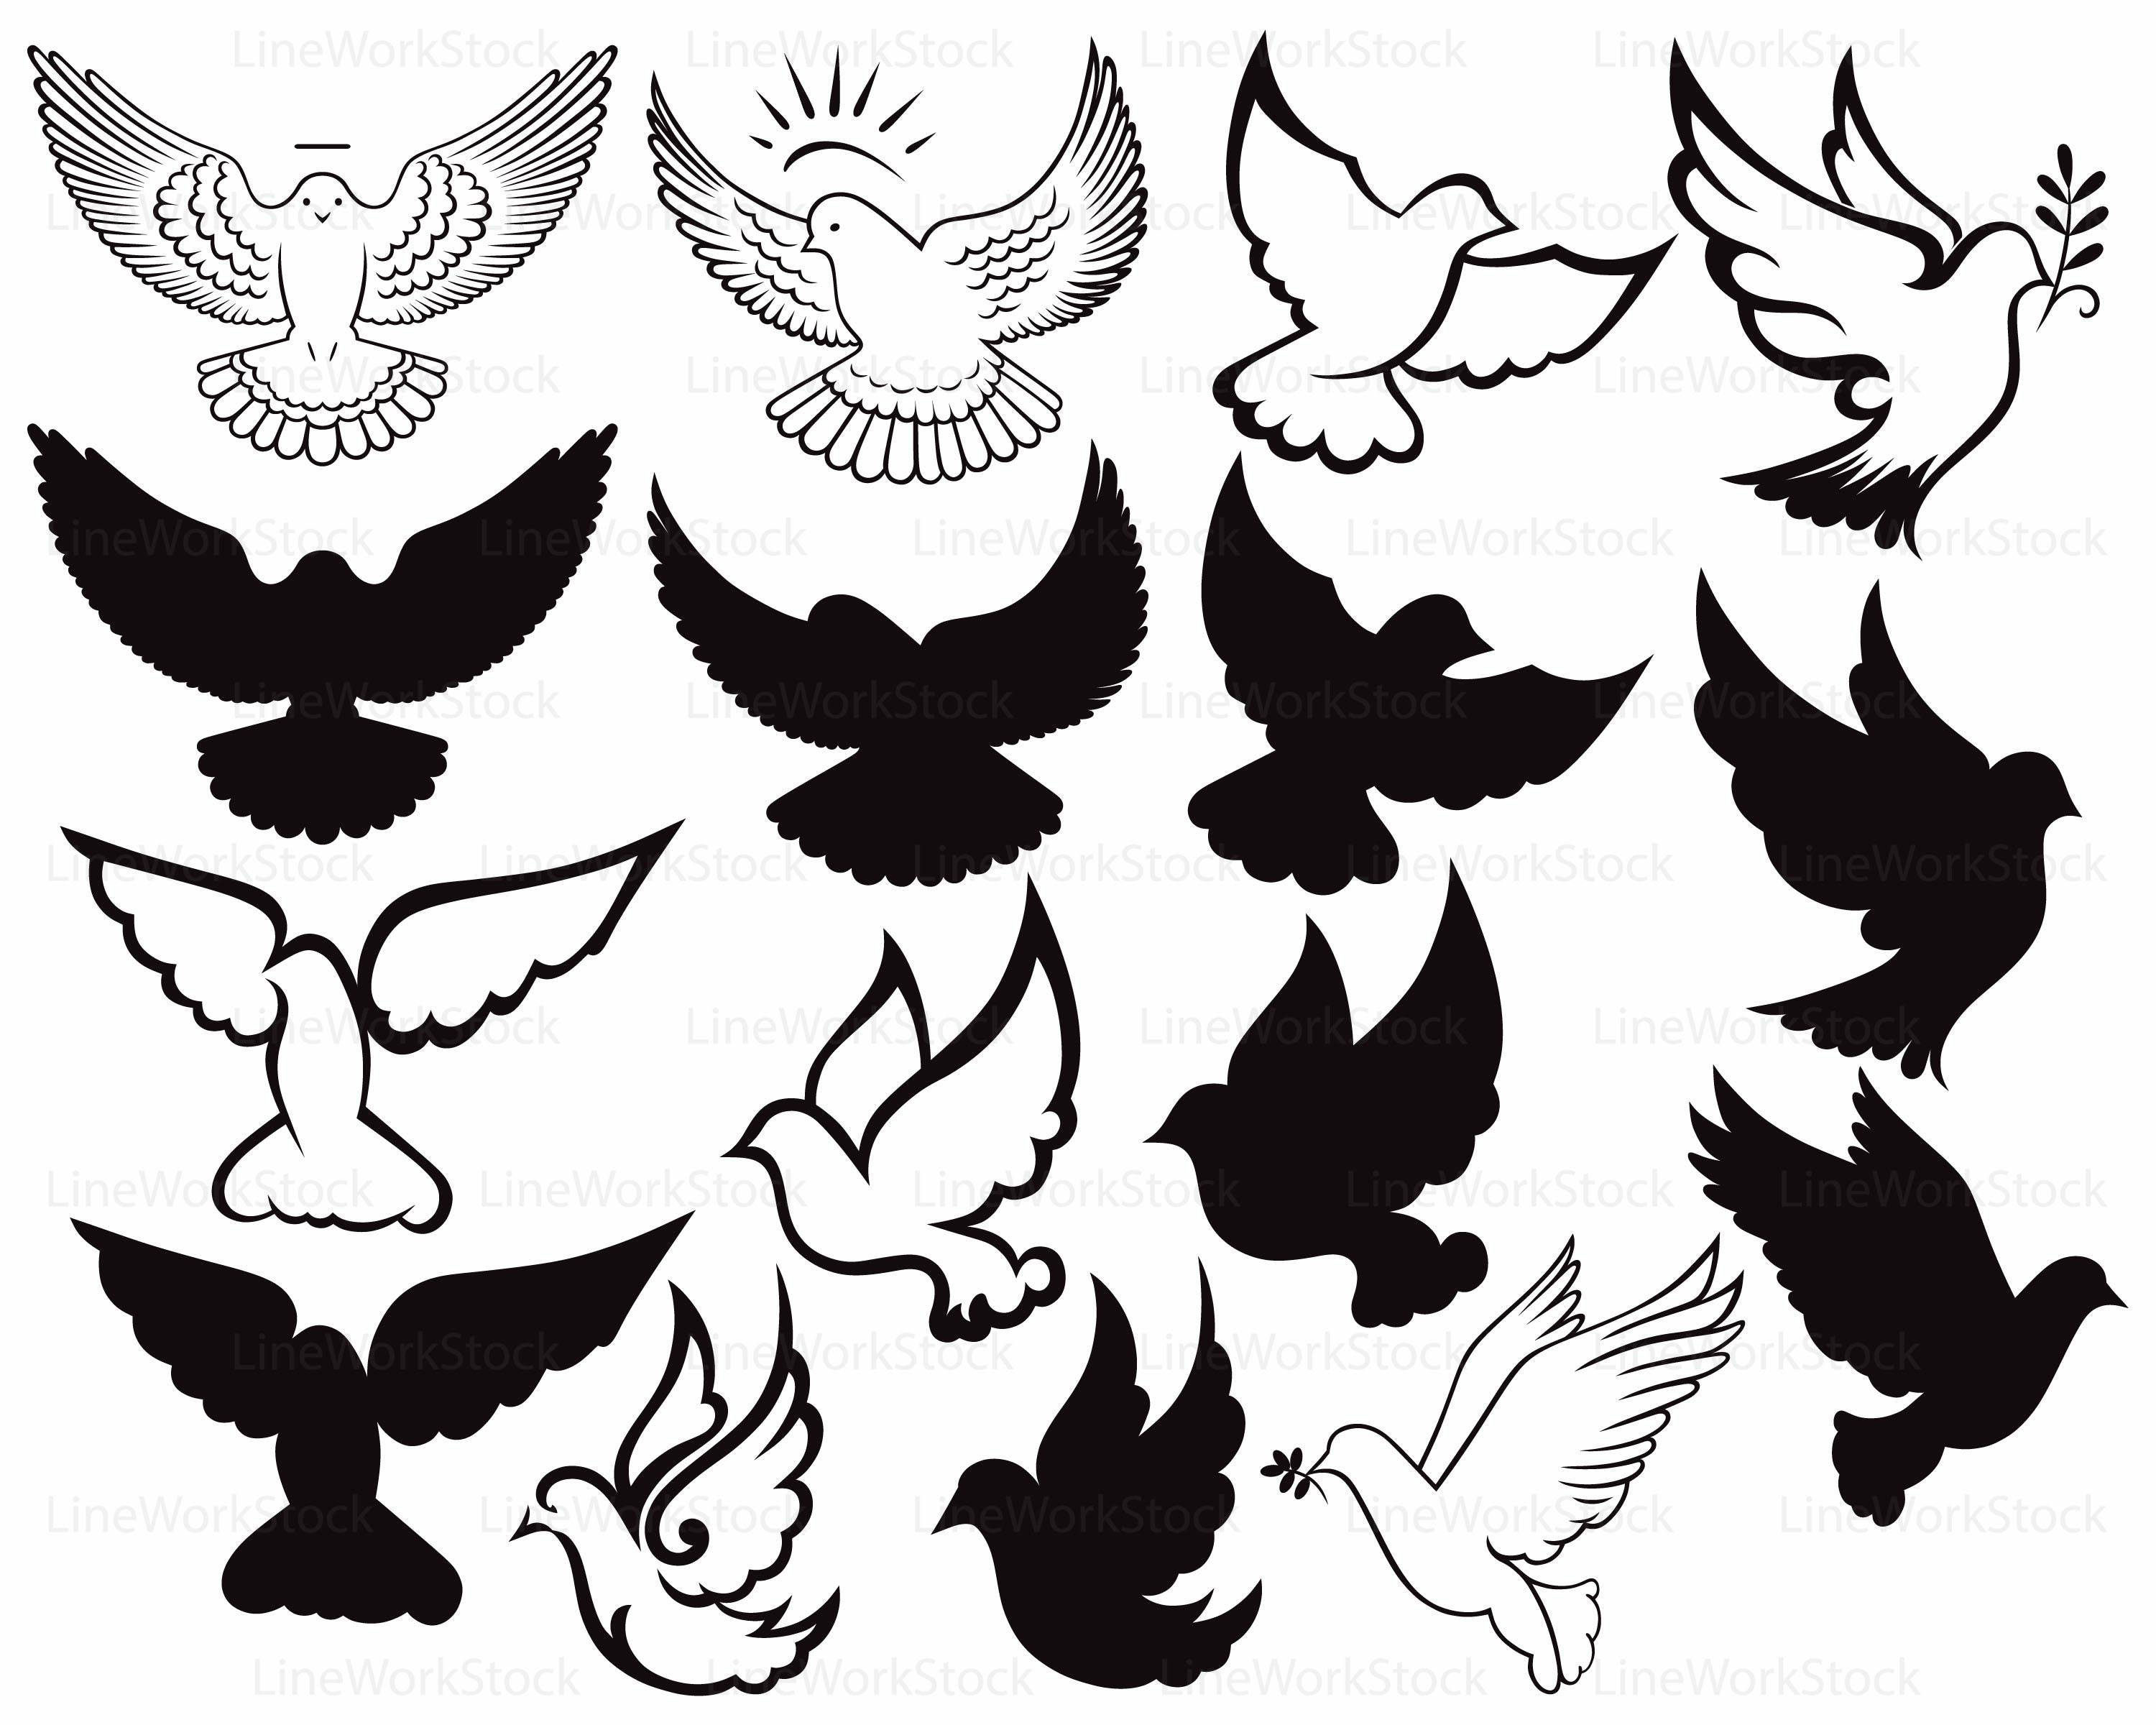 Holy Dove svg #3, Download drawings